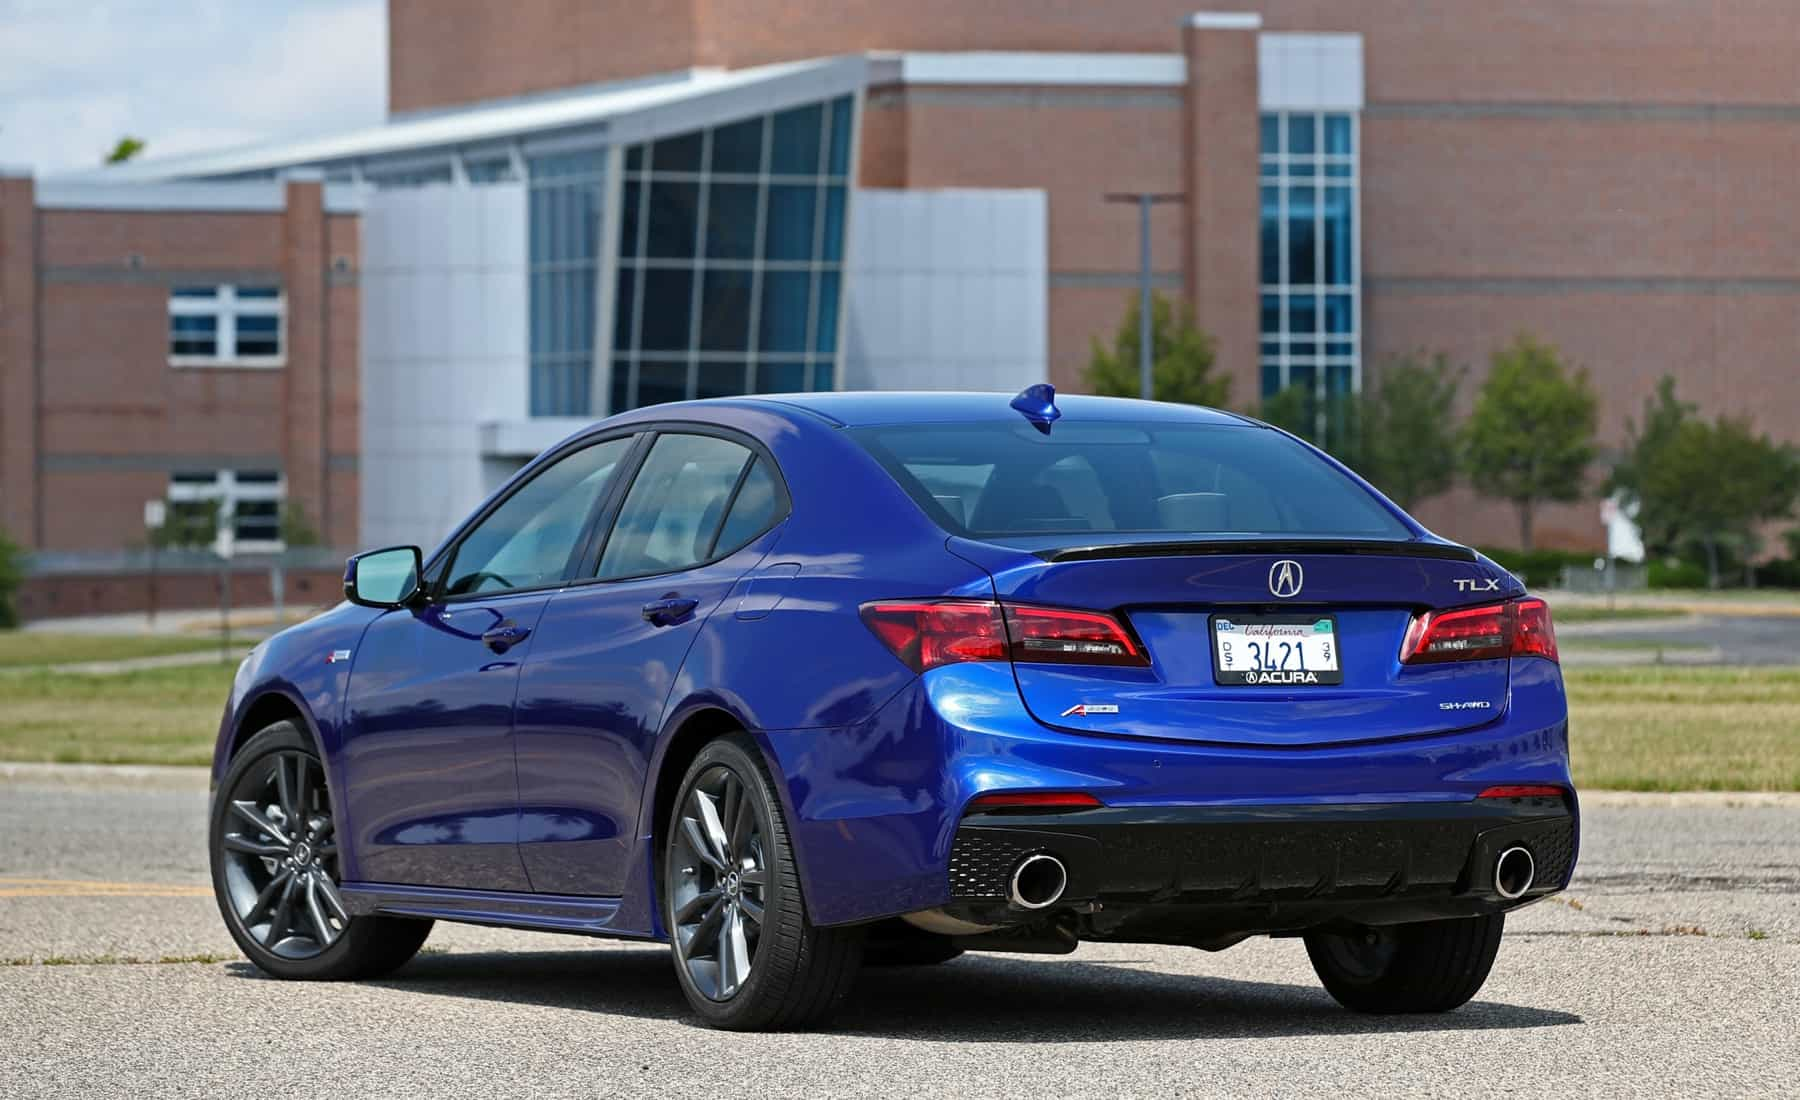 2018 Acura TLX Exterior Rear And Side (View 46 of 46)